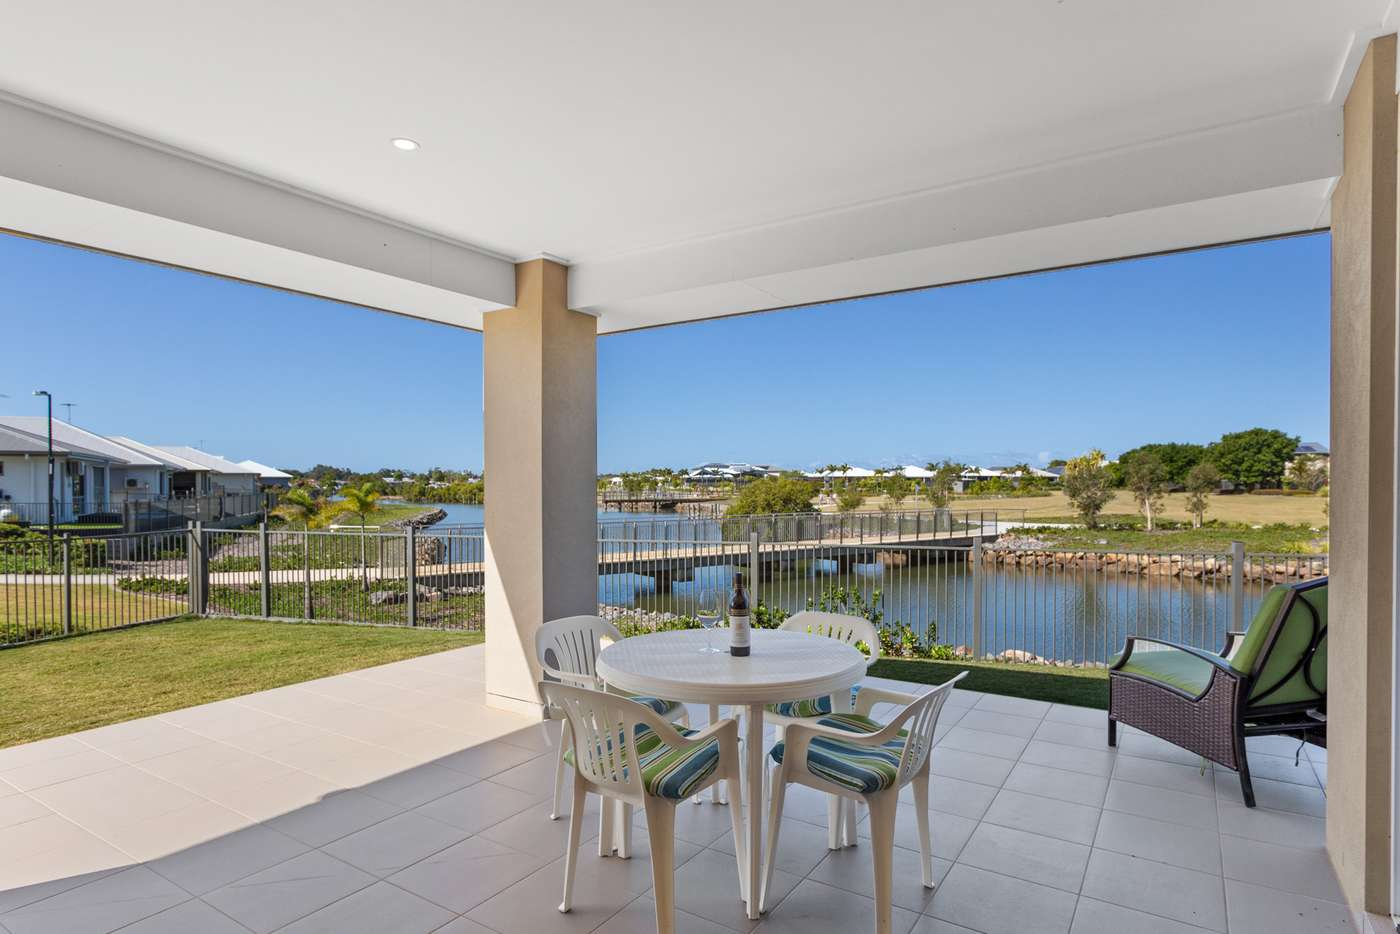 Main view of Homely house listing, 1 Seacrest Court, Banksia Beach QLD 4507